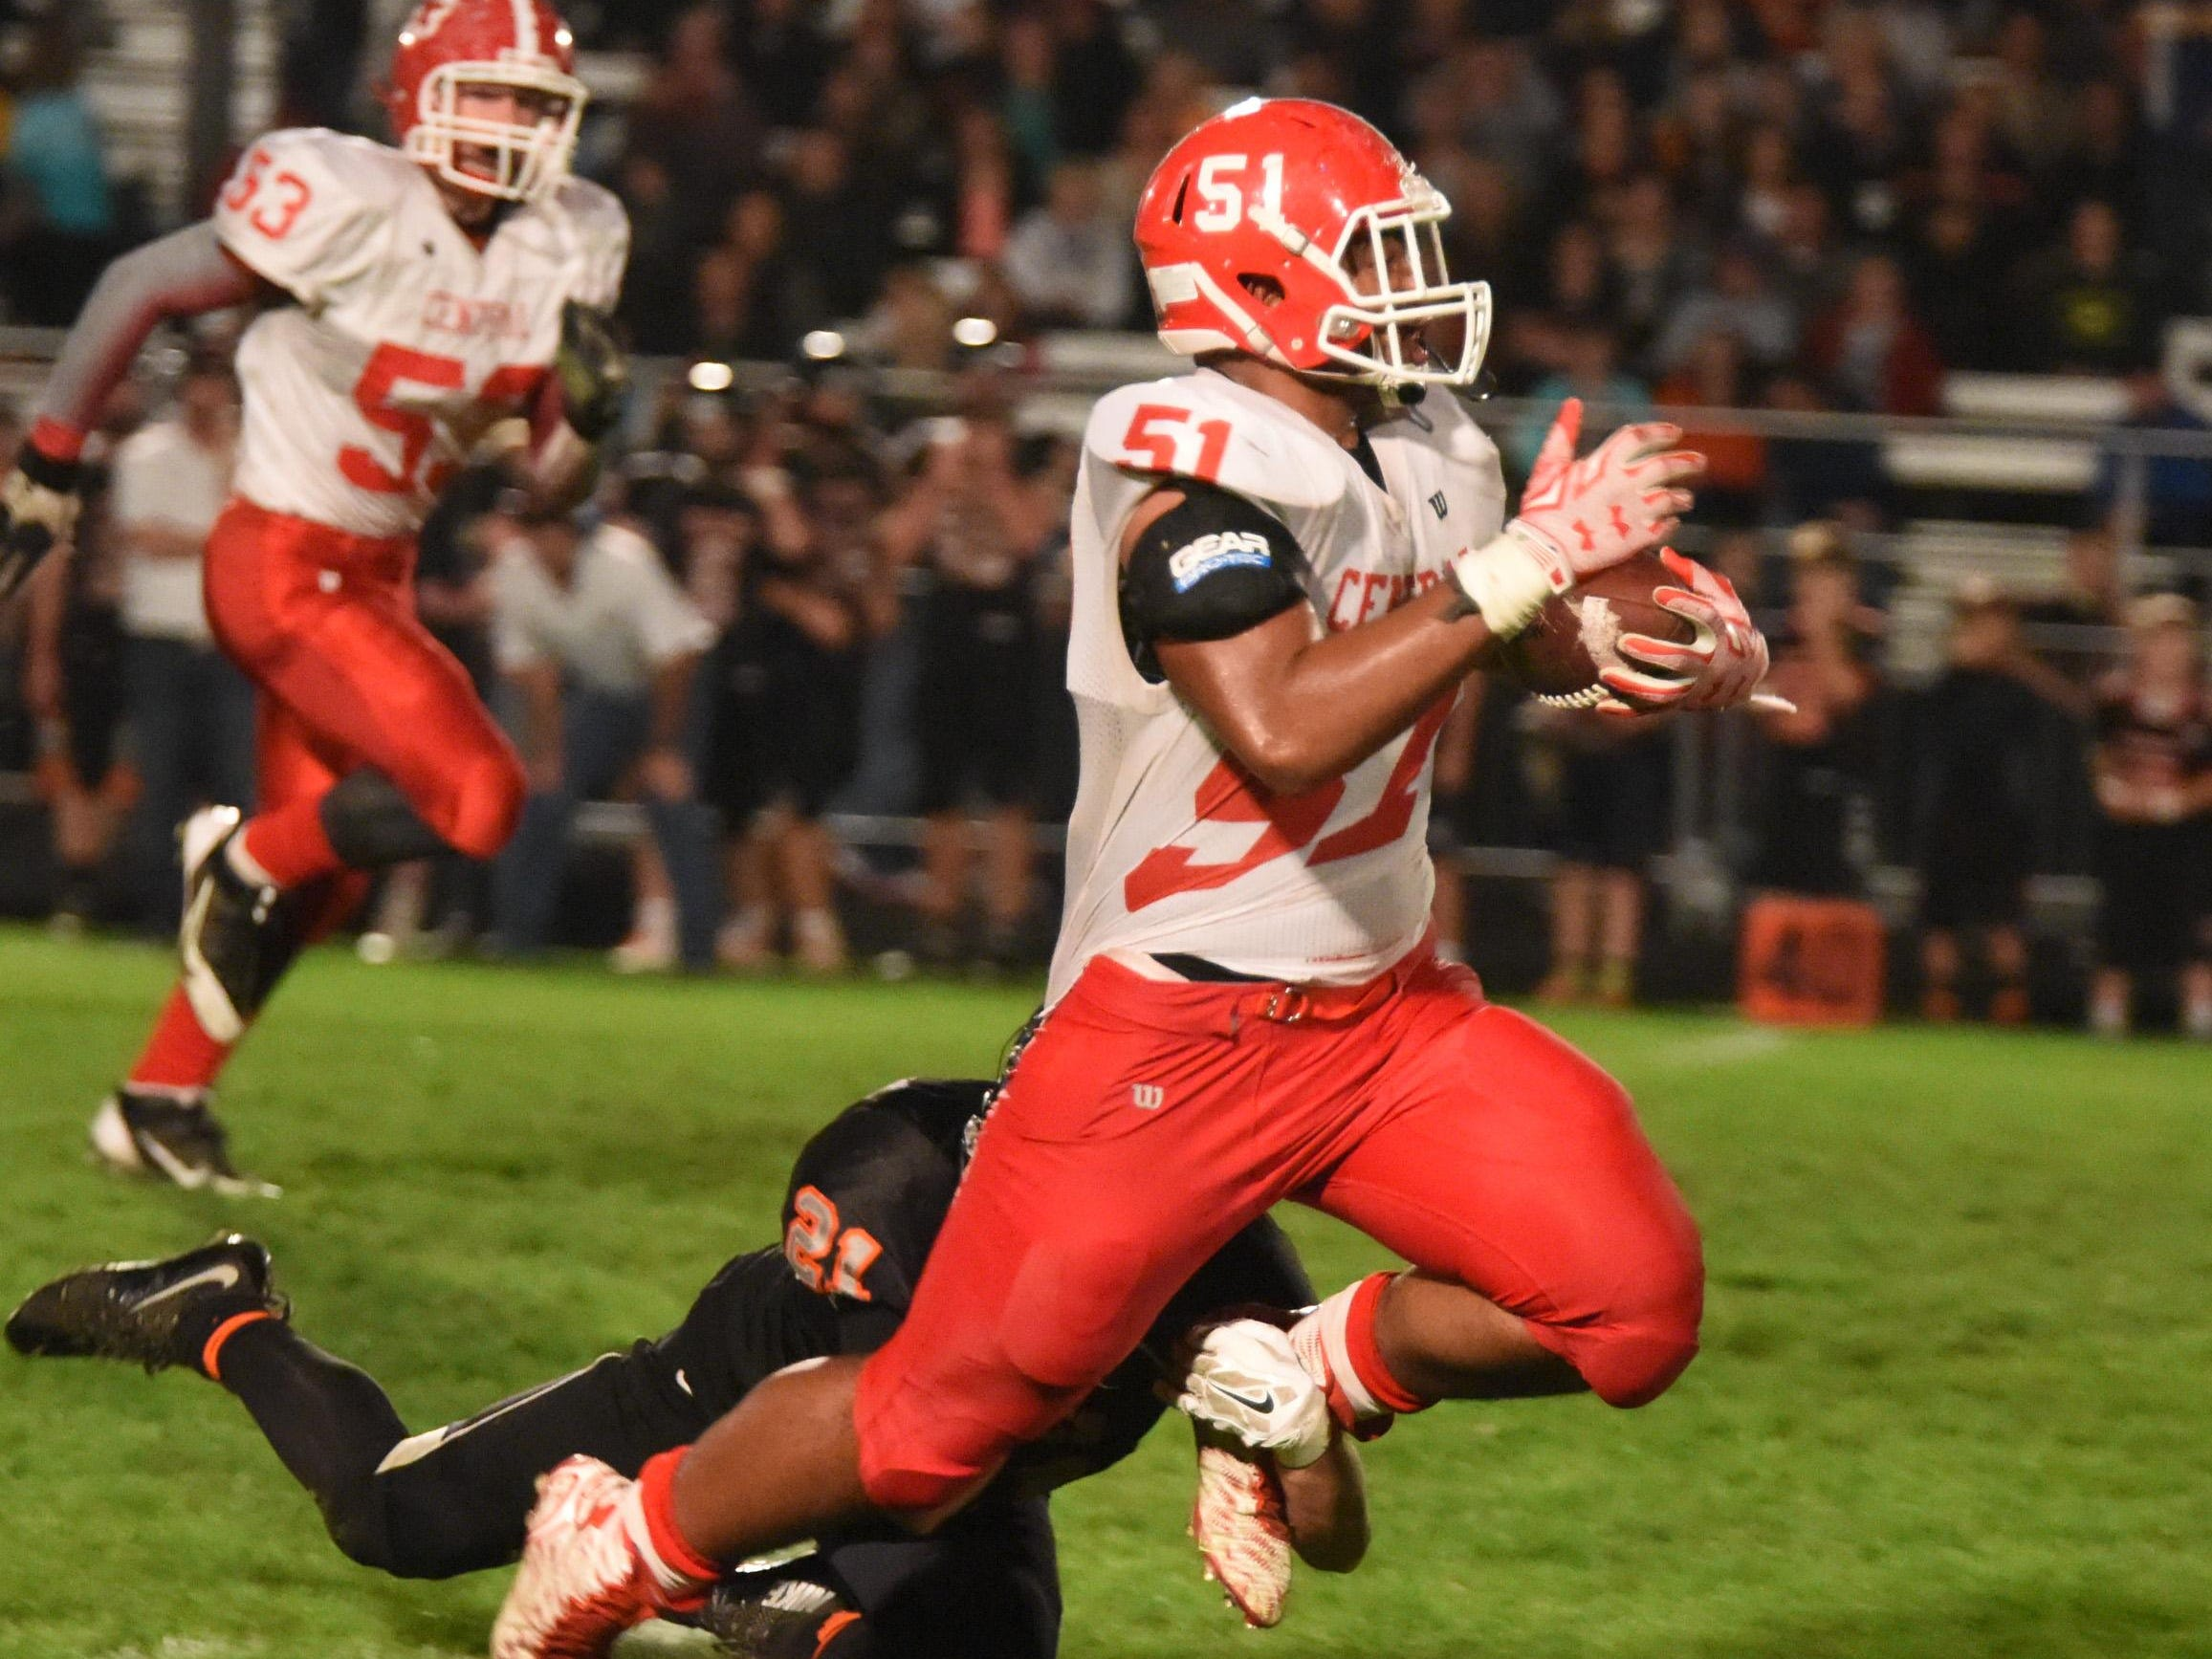 Central's Marlon Tuipulotu returns an interceptions on Oct. 16 Silverton and Central high schools battled in Silverton to a 34-21 victory for the Panthers.